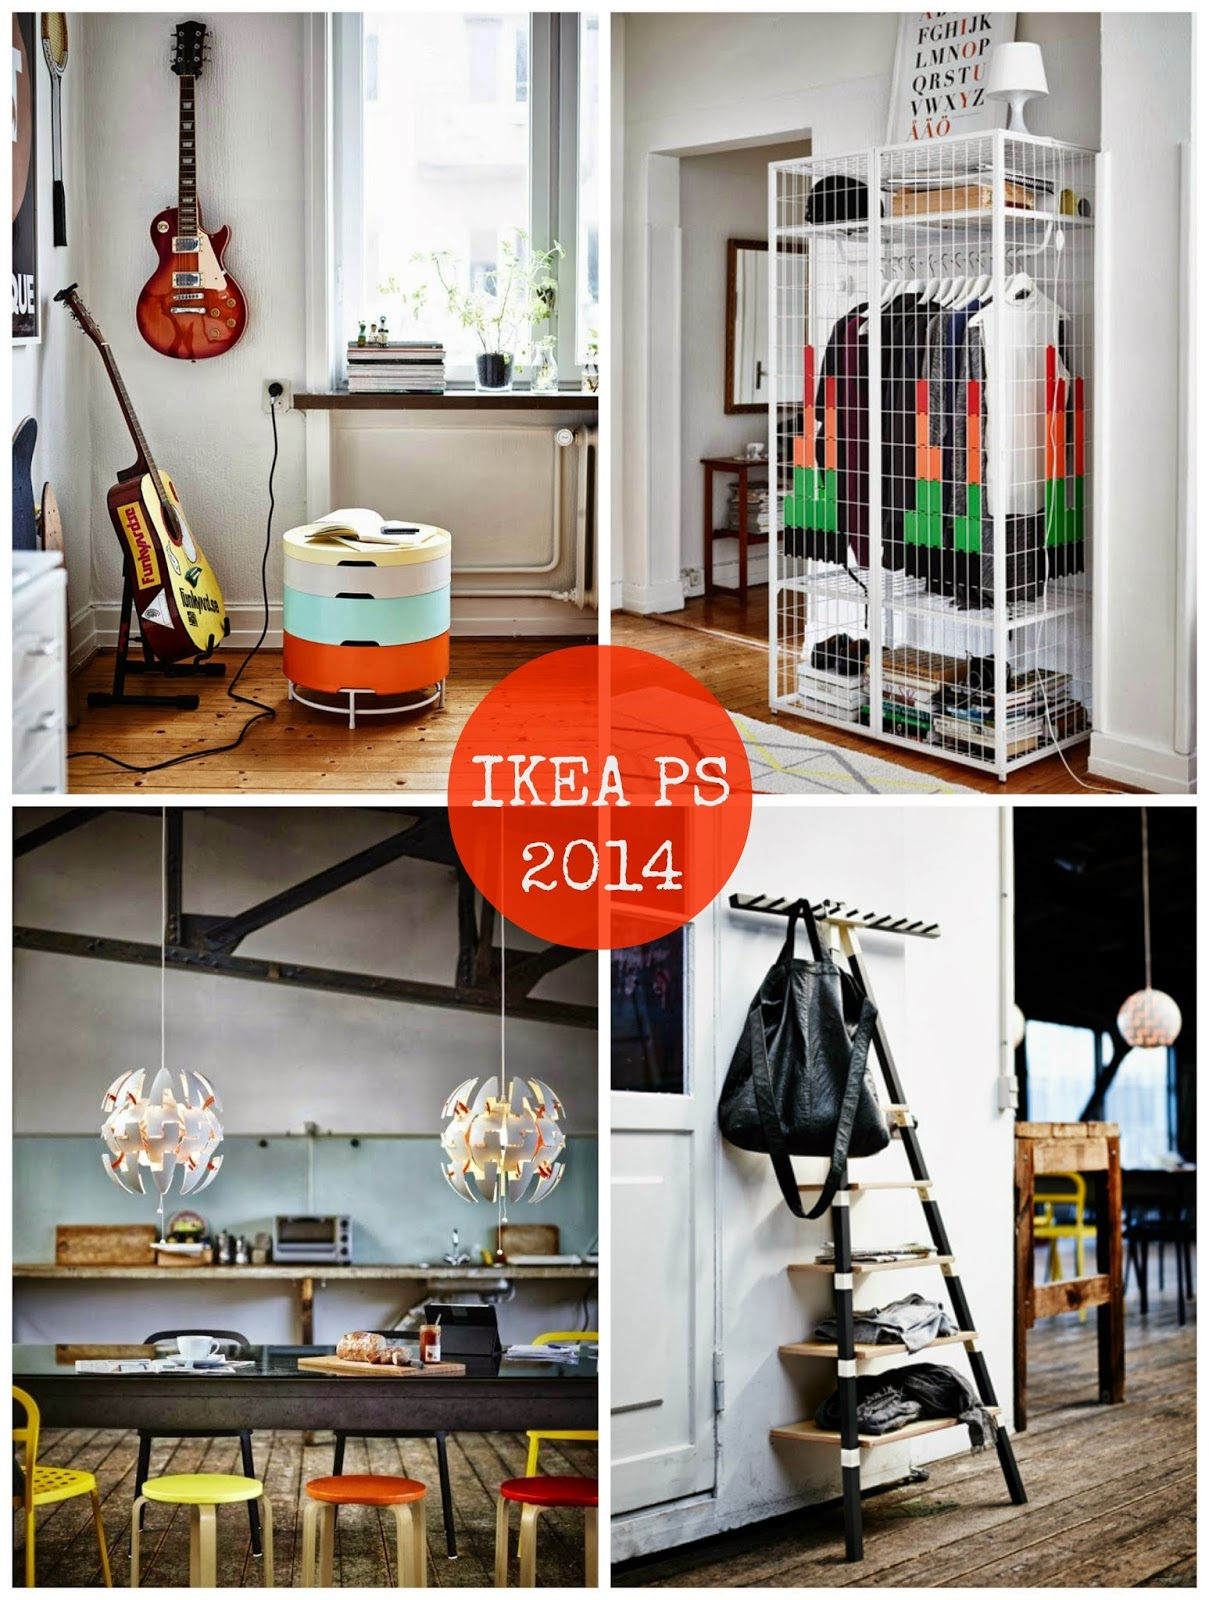 vivere a piedi nudi living barefoot un luned da pin ikea ps 2014. Black Bedroom Furniture Sets. Home Design Ideas